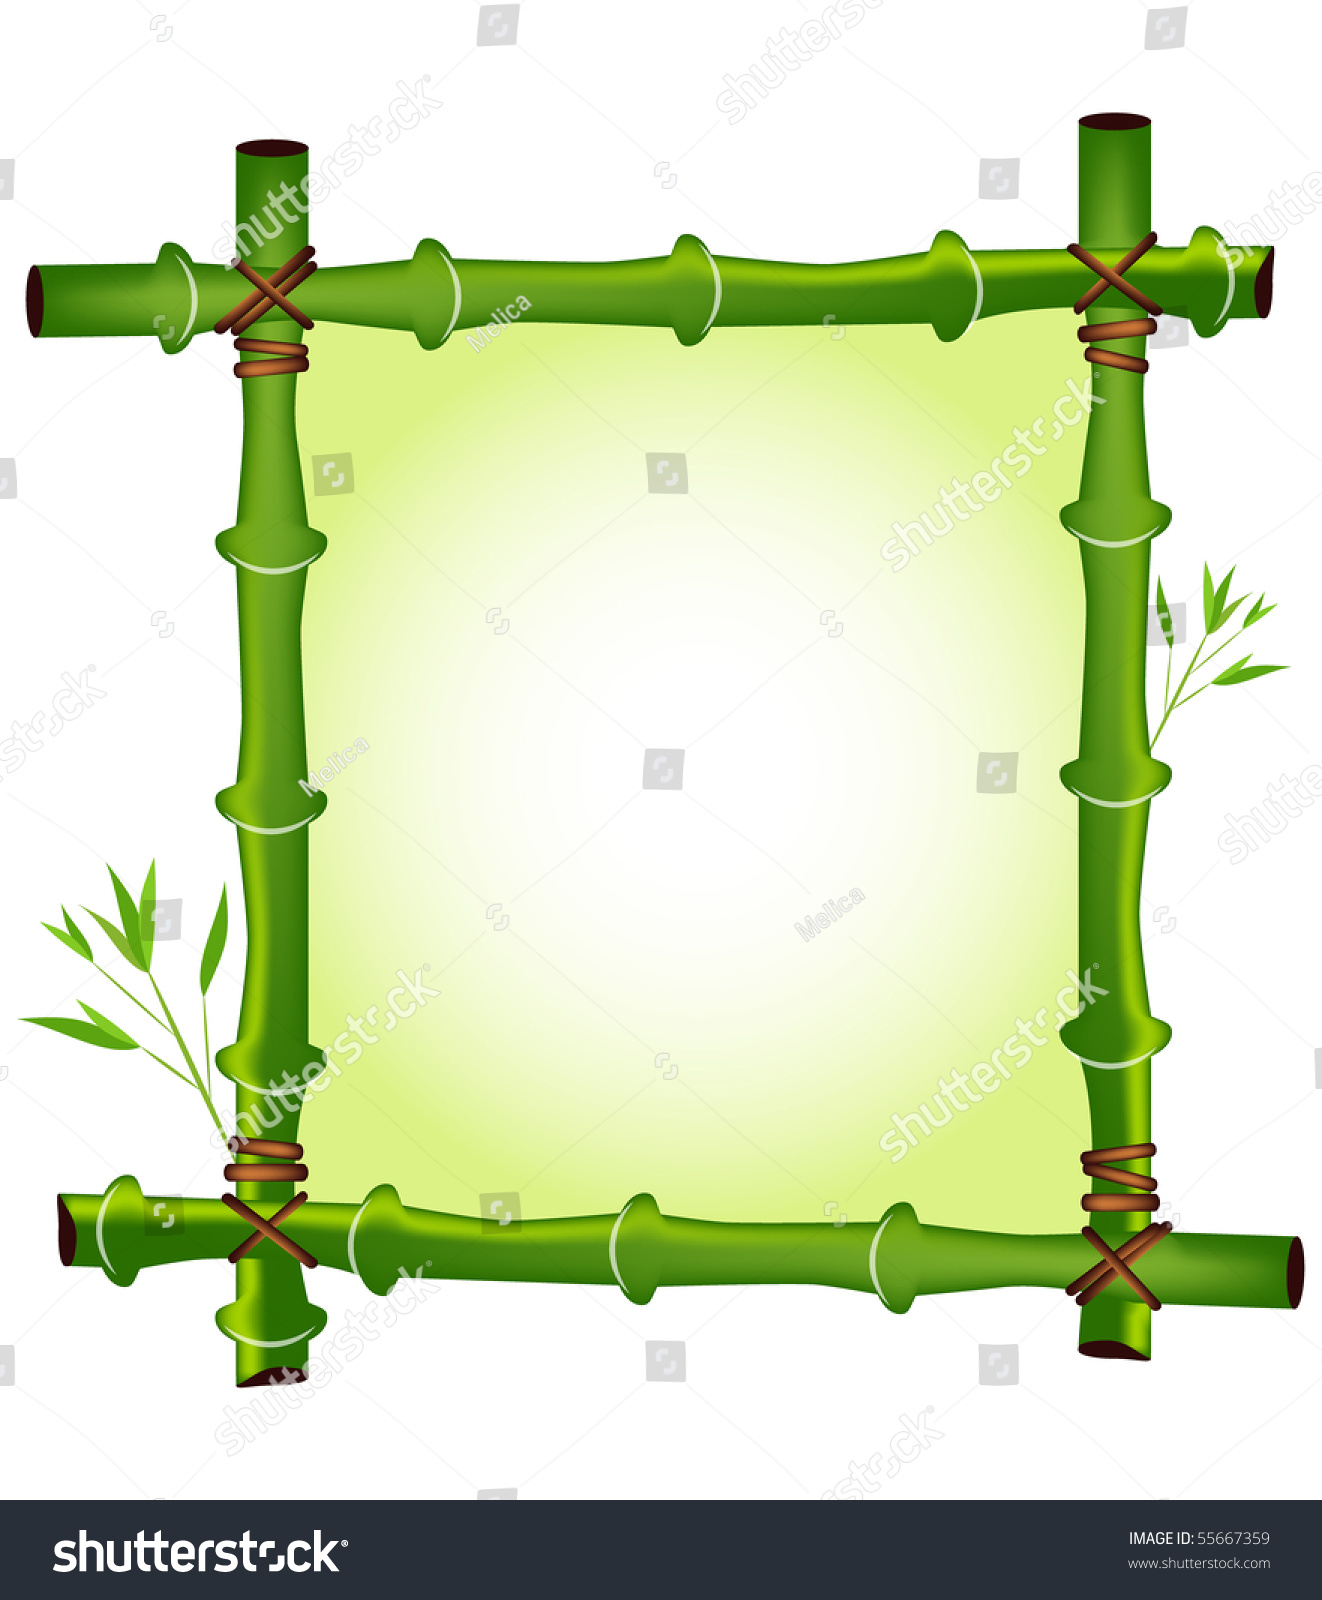 green bamboo frame design stock vector illustration 55667359